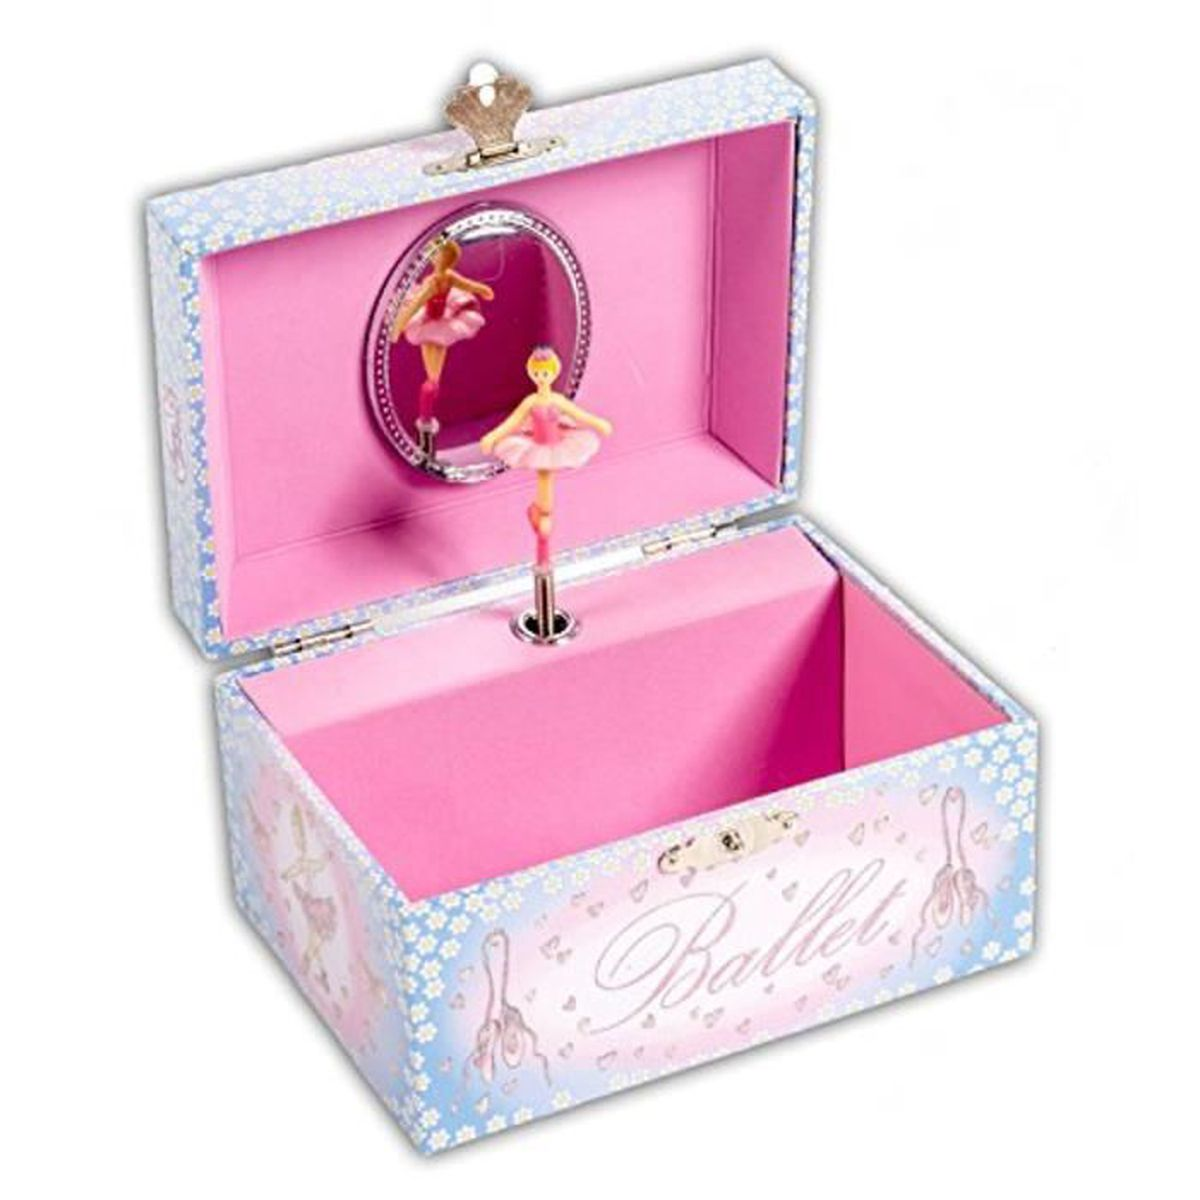 bo te bijoux musicale de ballet coffret bijoux rose pour. Black Bedroom Furniture Sets. Home Design Ideas